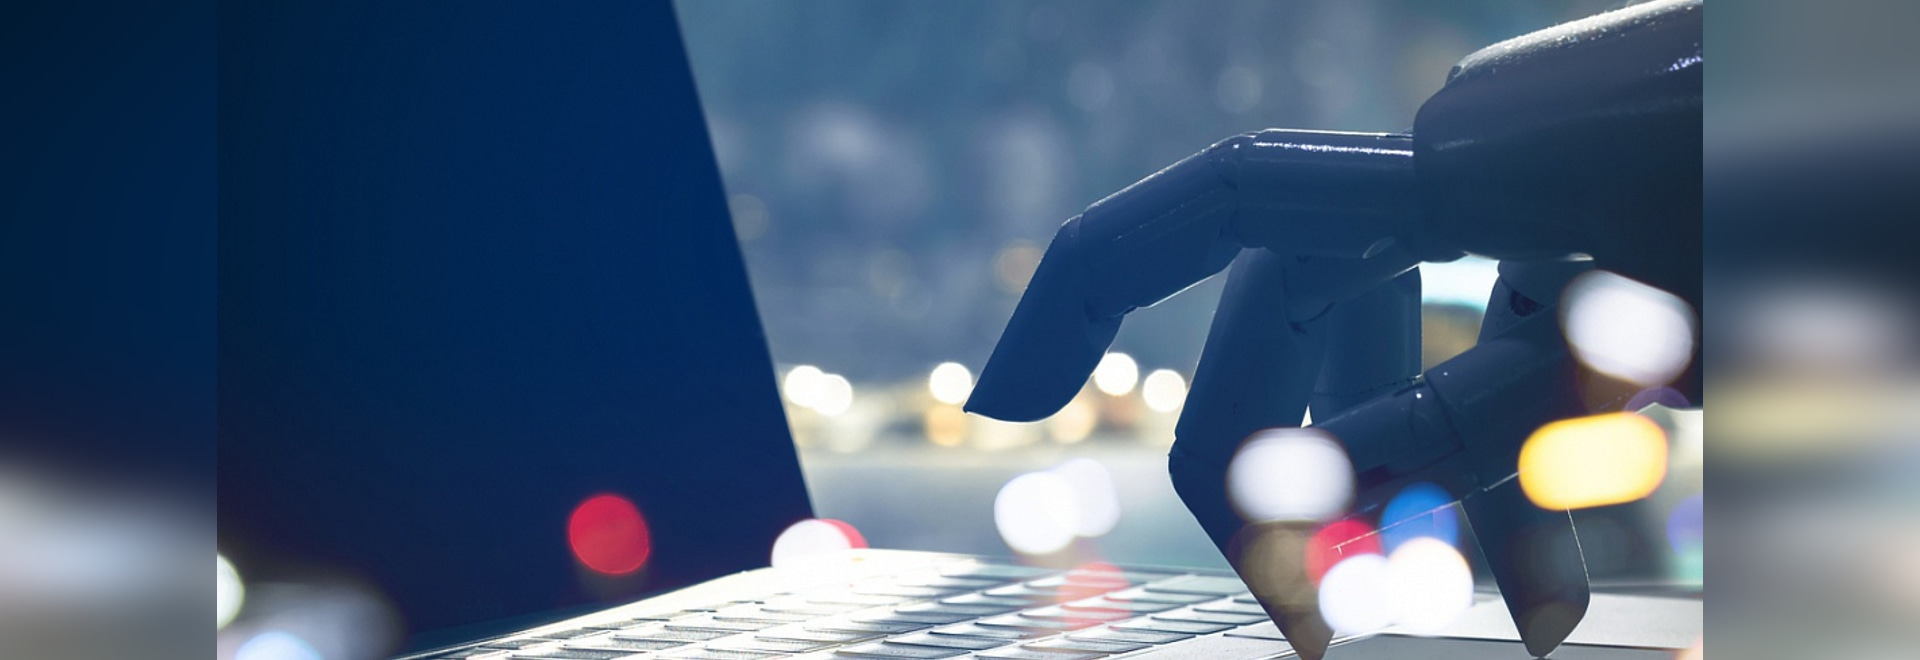 Cognitive Commerce: How Can Your Business Benefit From AI?